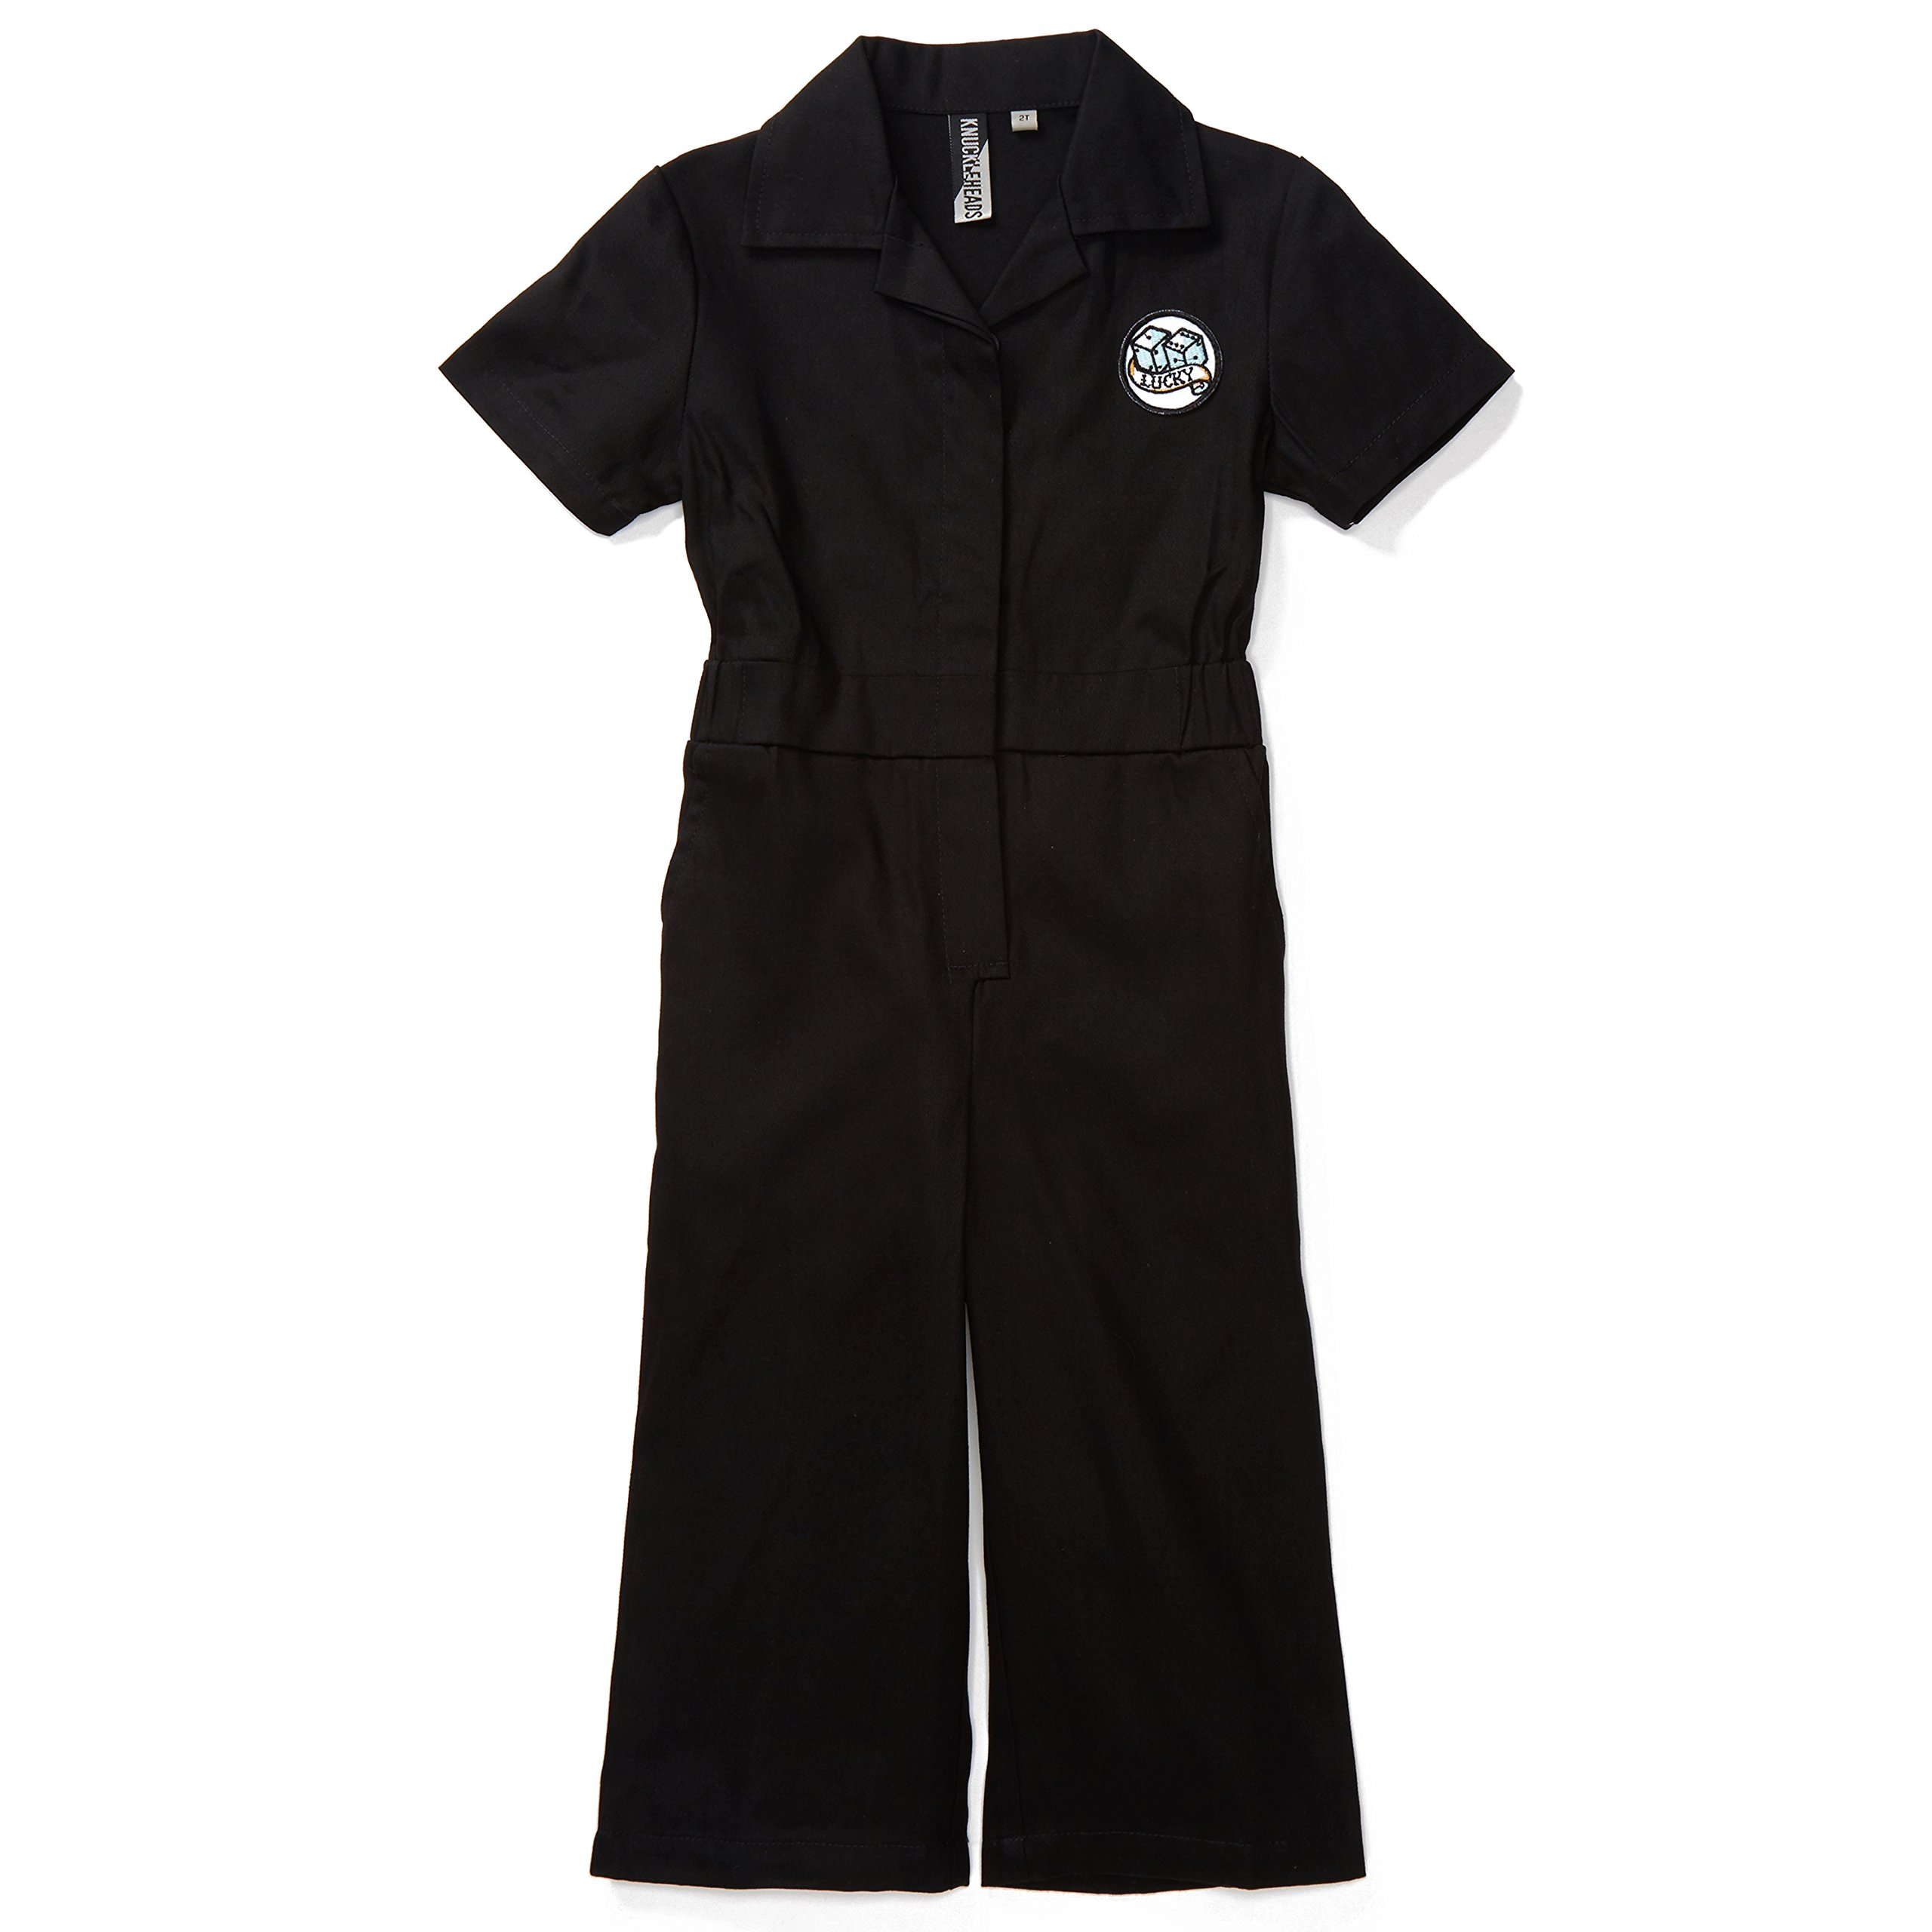 Born to Love Knuckleheads - Infant and Baby Boy Grease Monkey Coveralls (2T, Girl Black)